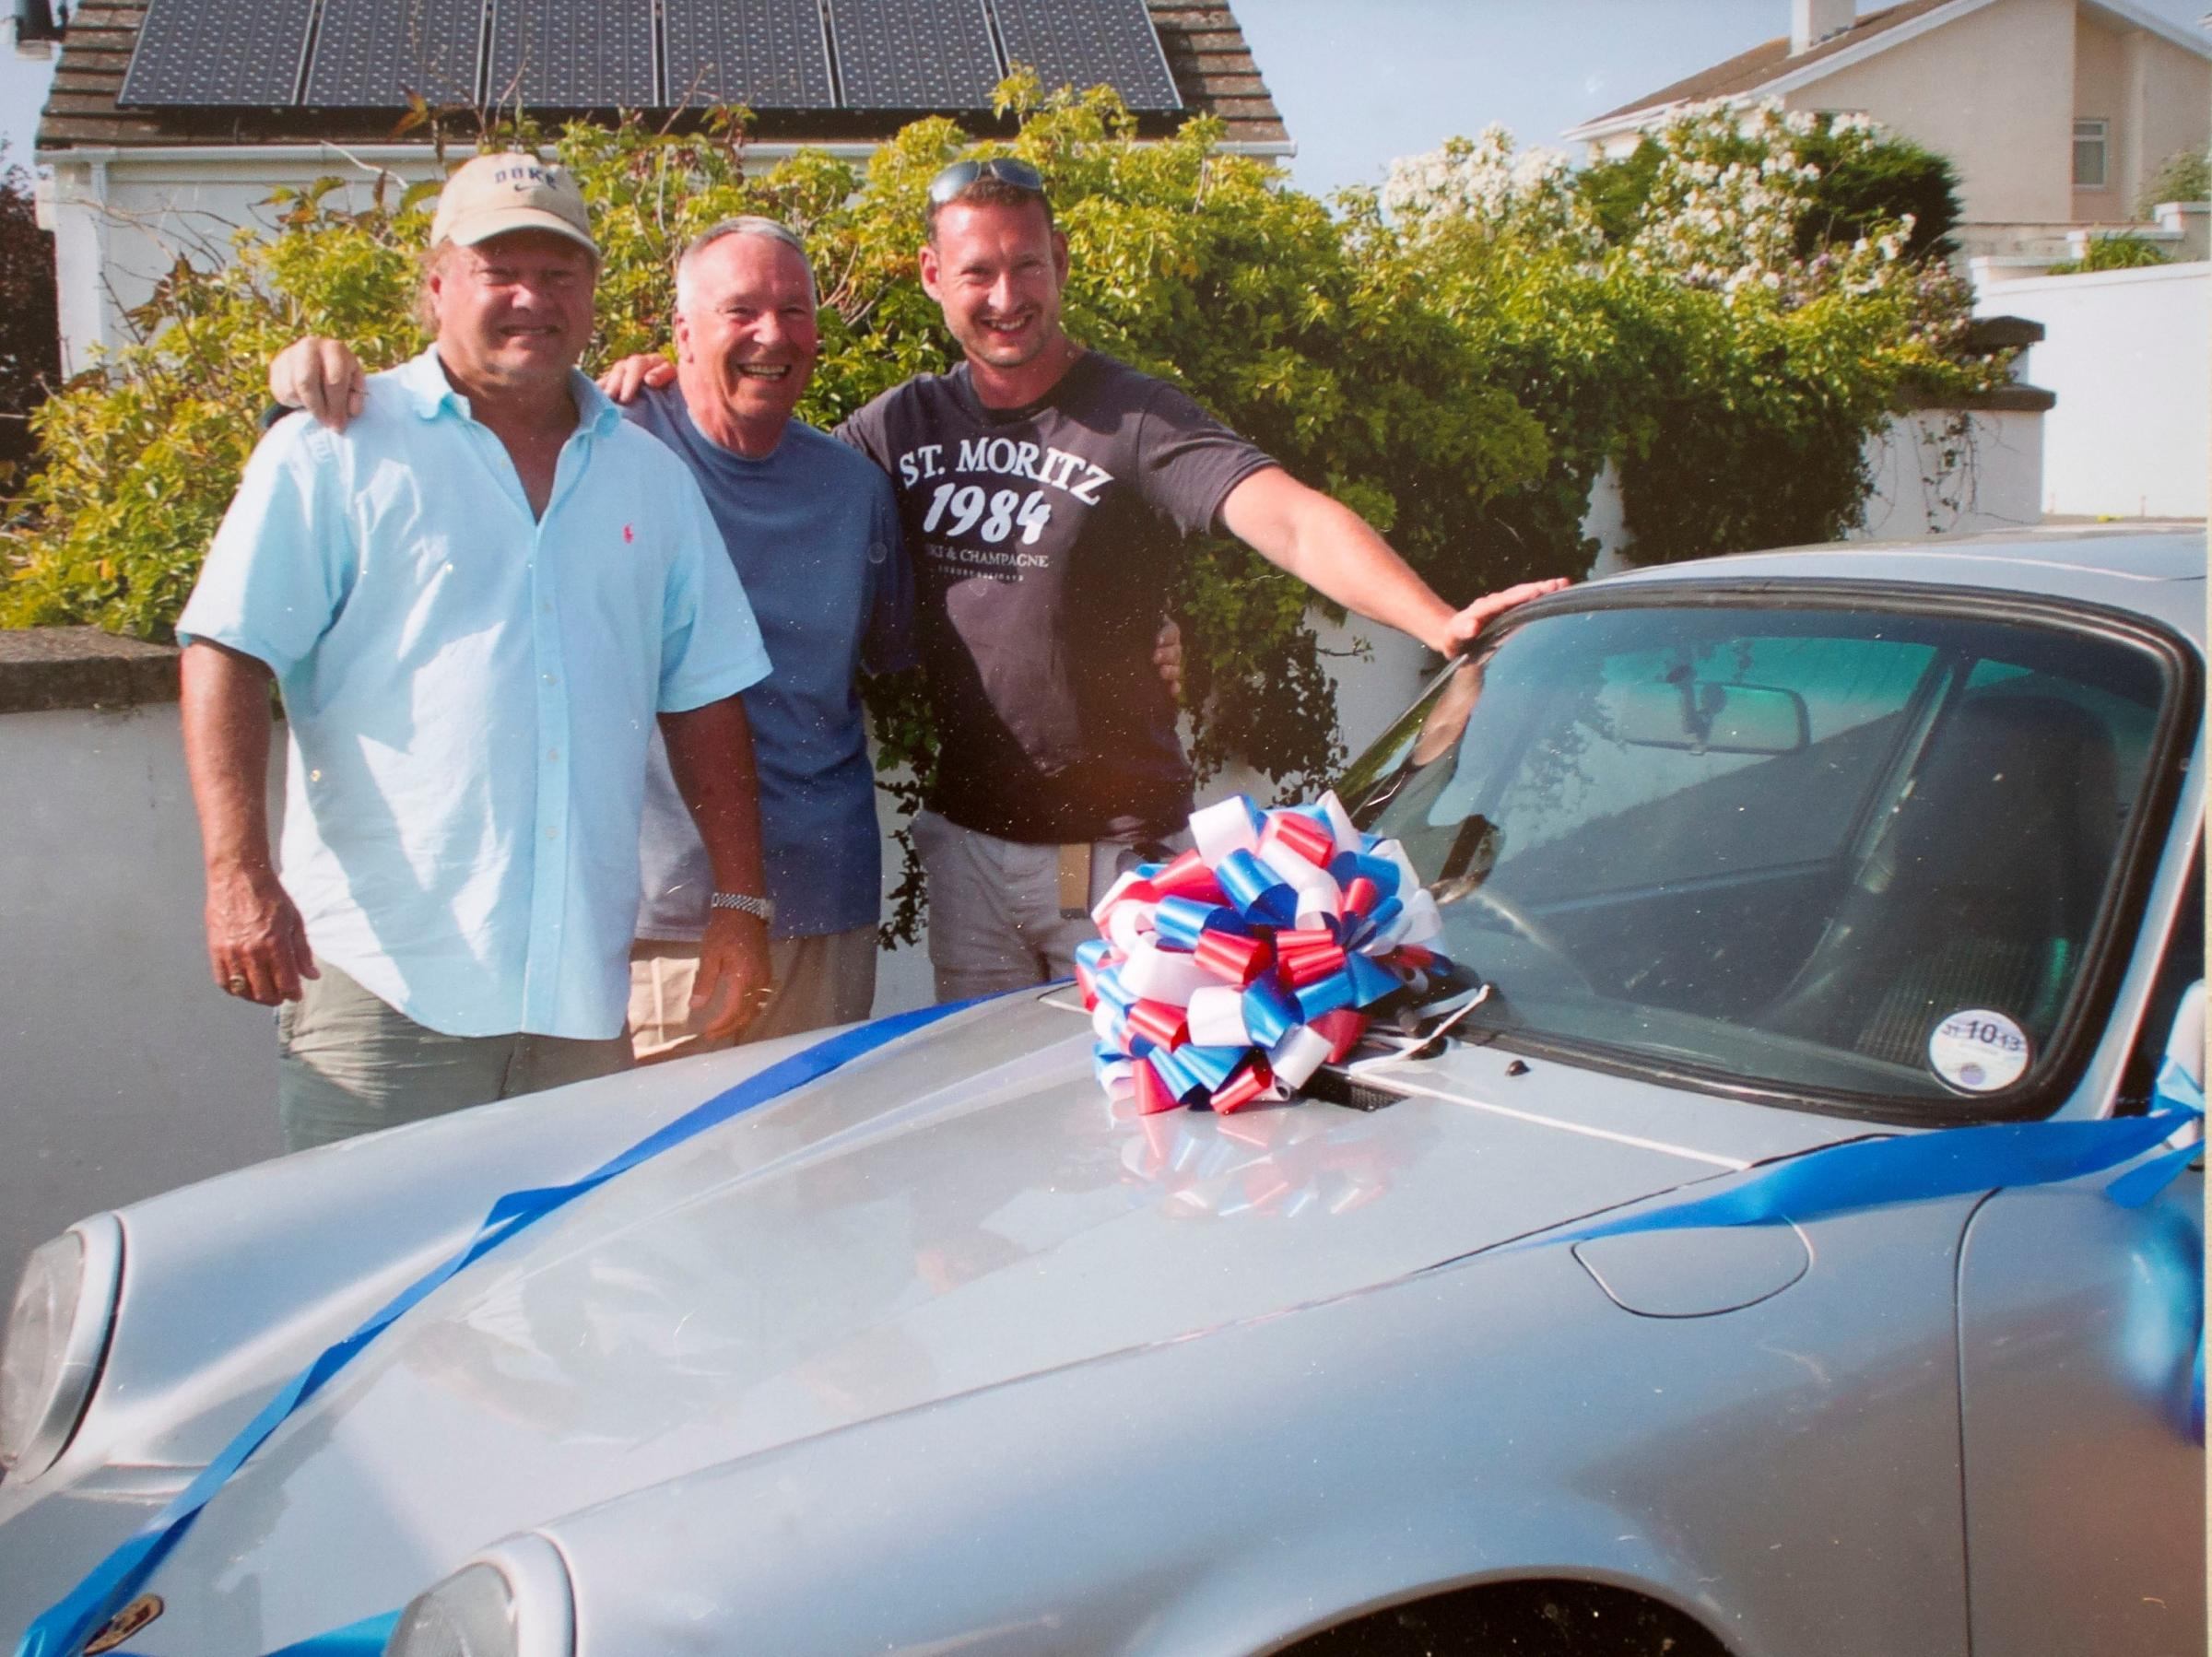 Pembrokeshire man is reunited with beloved Porsche in surprise retirement gift